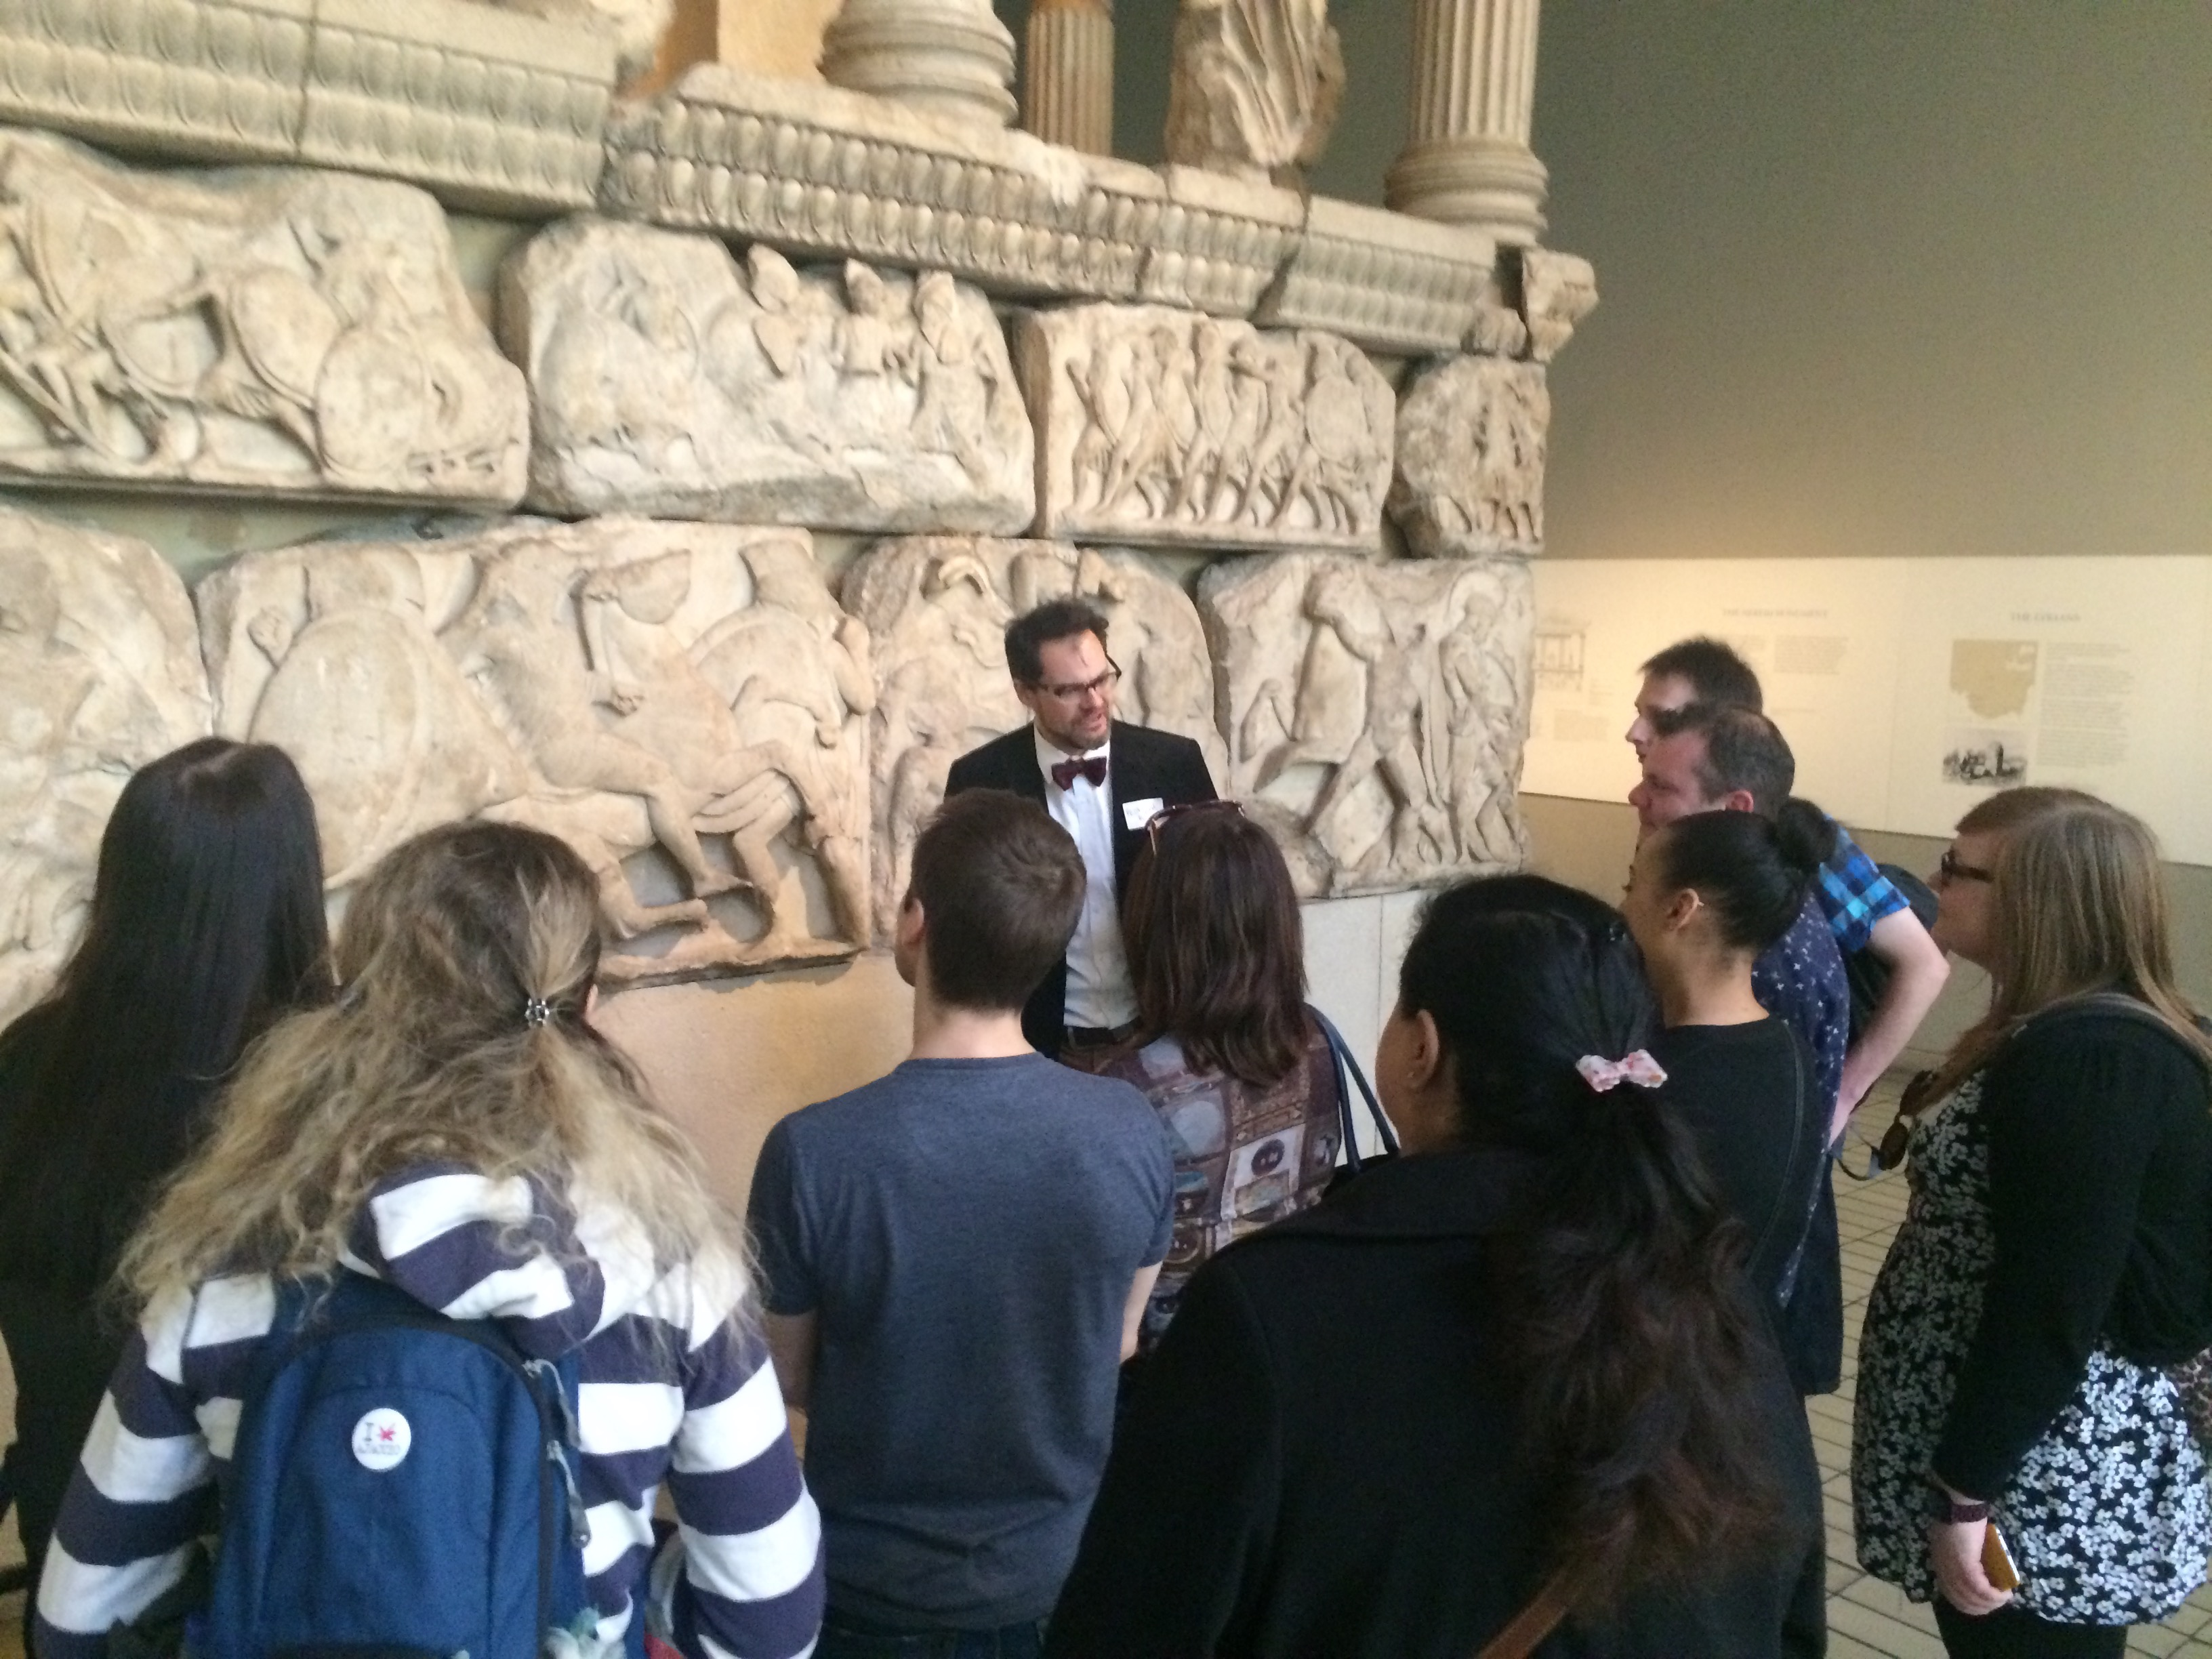 CityImpro's Balderdash at the Museum Tour